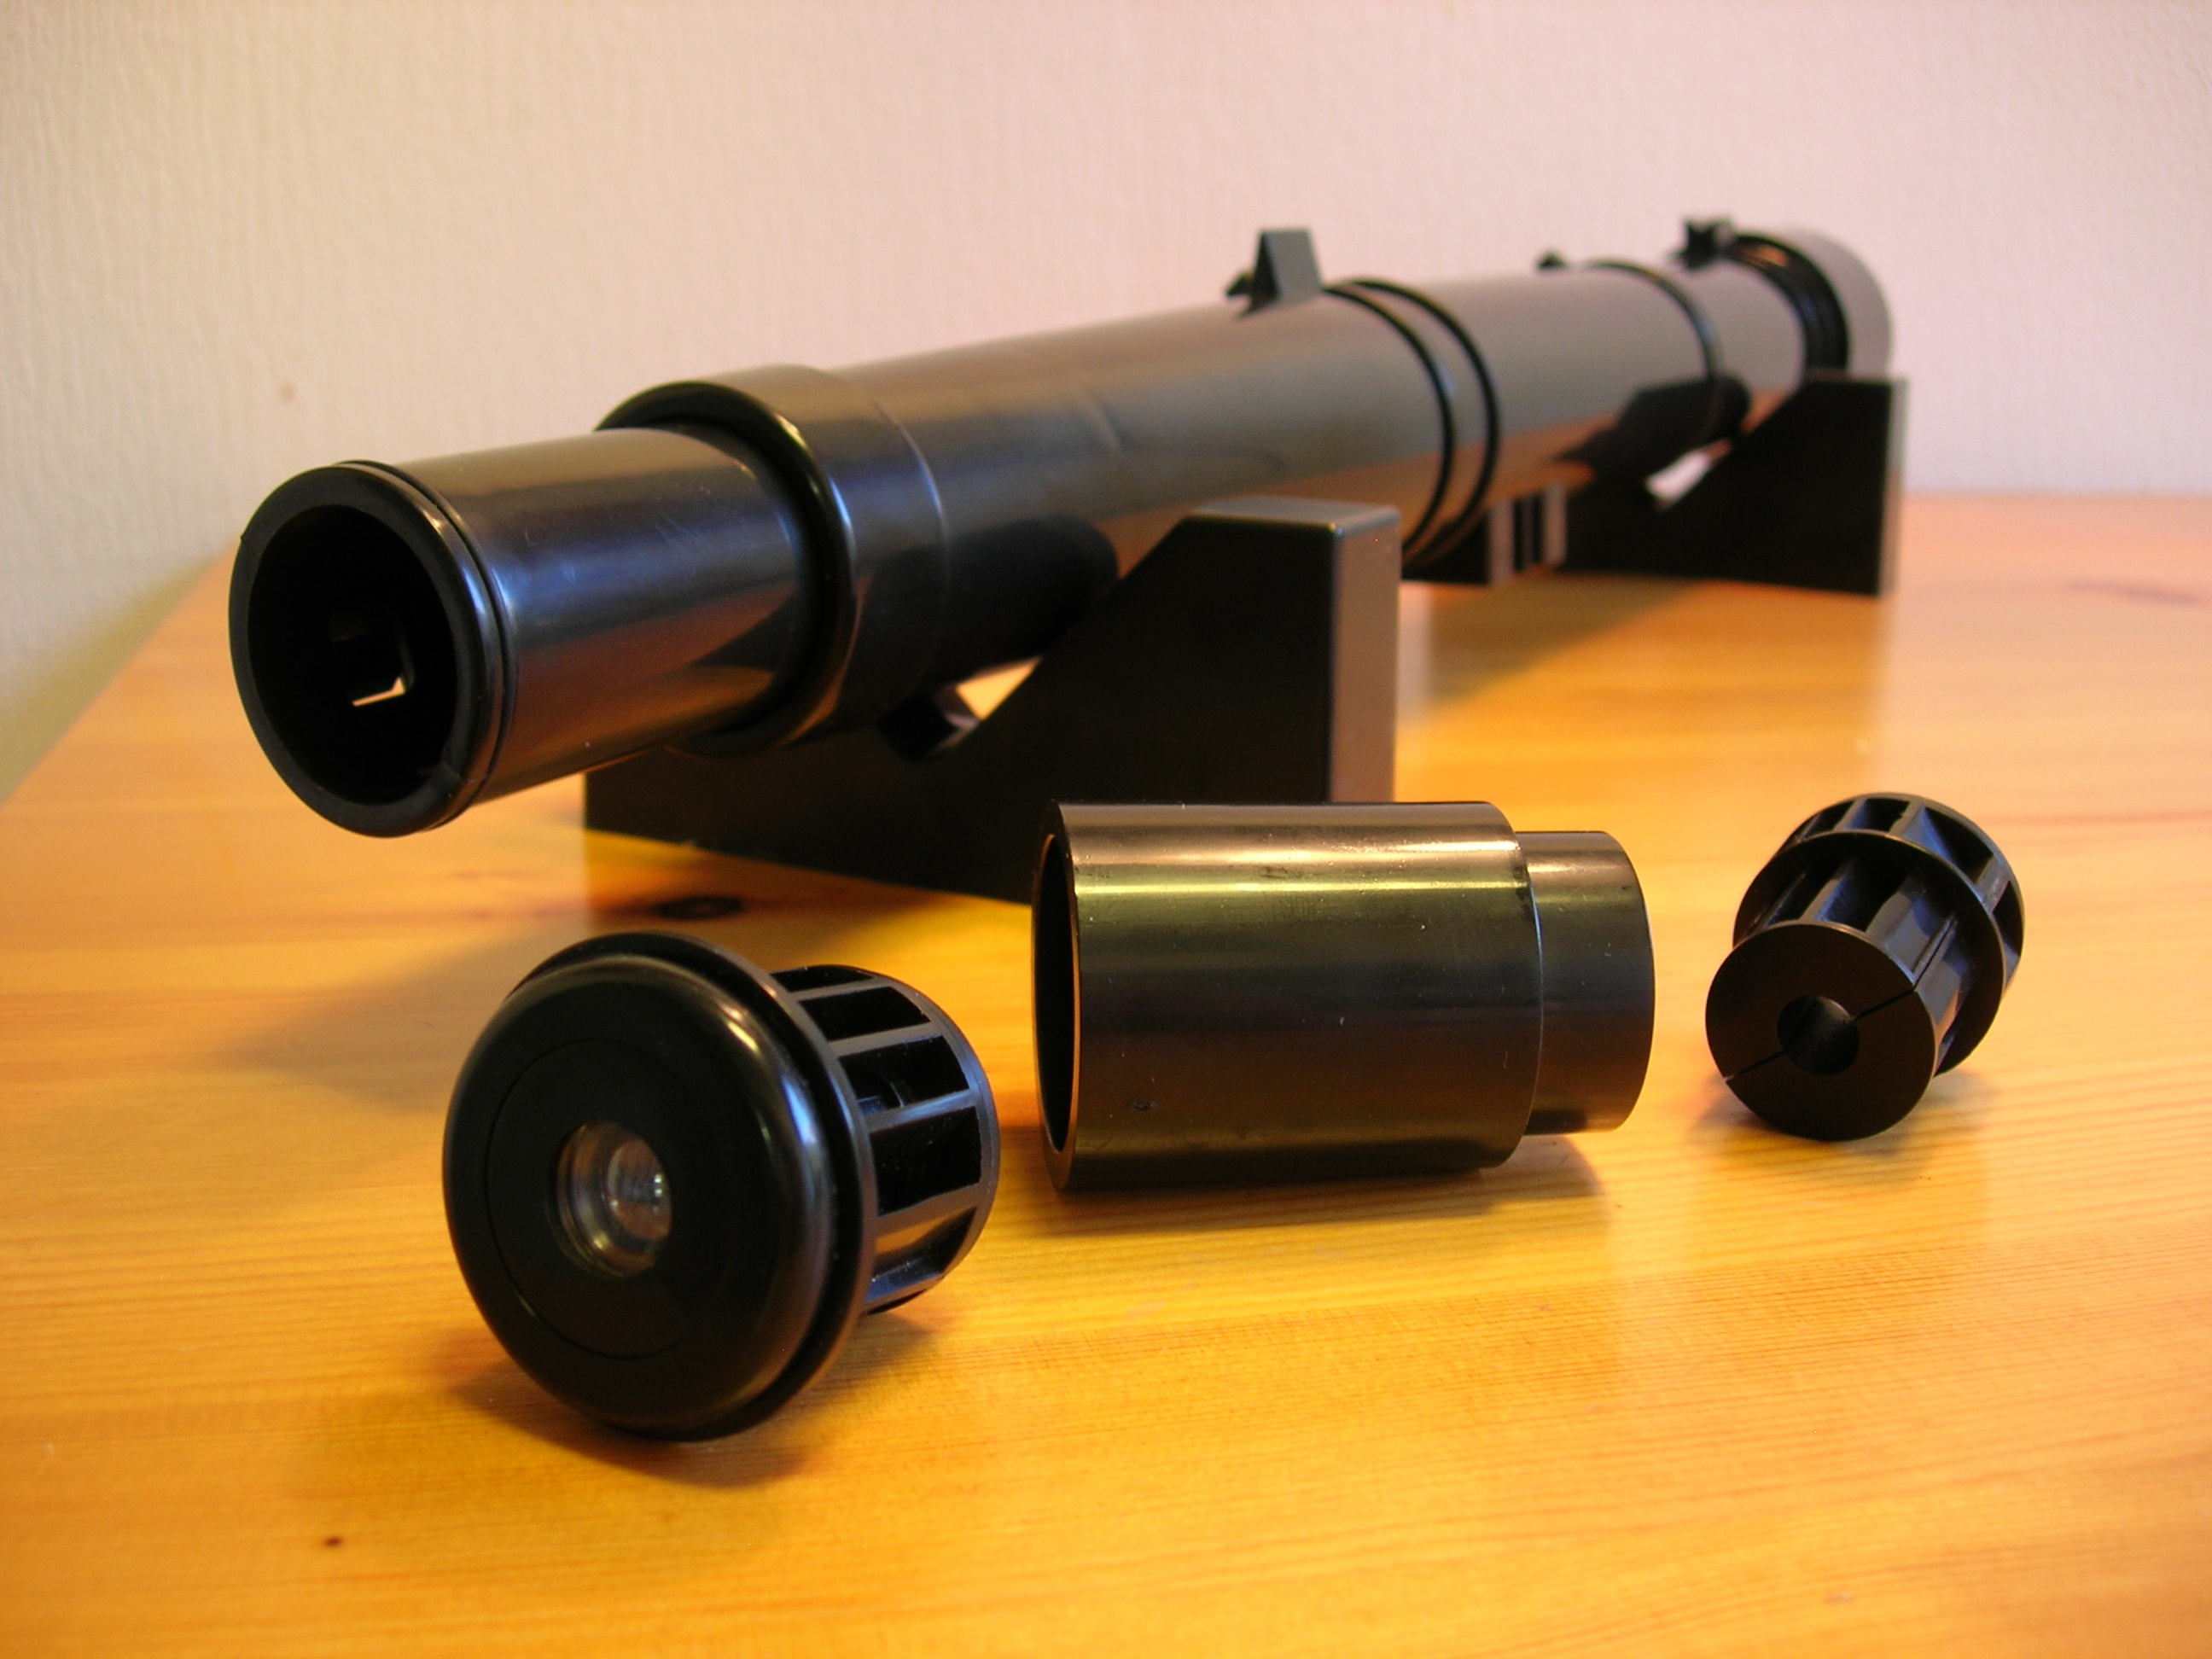 Diy galileo telescope lens group mm diameter mm focal length